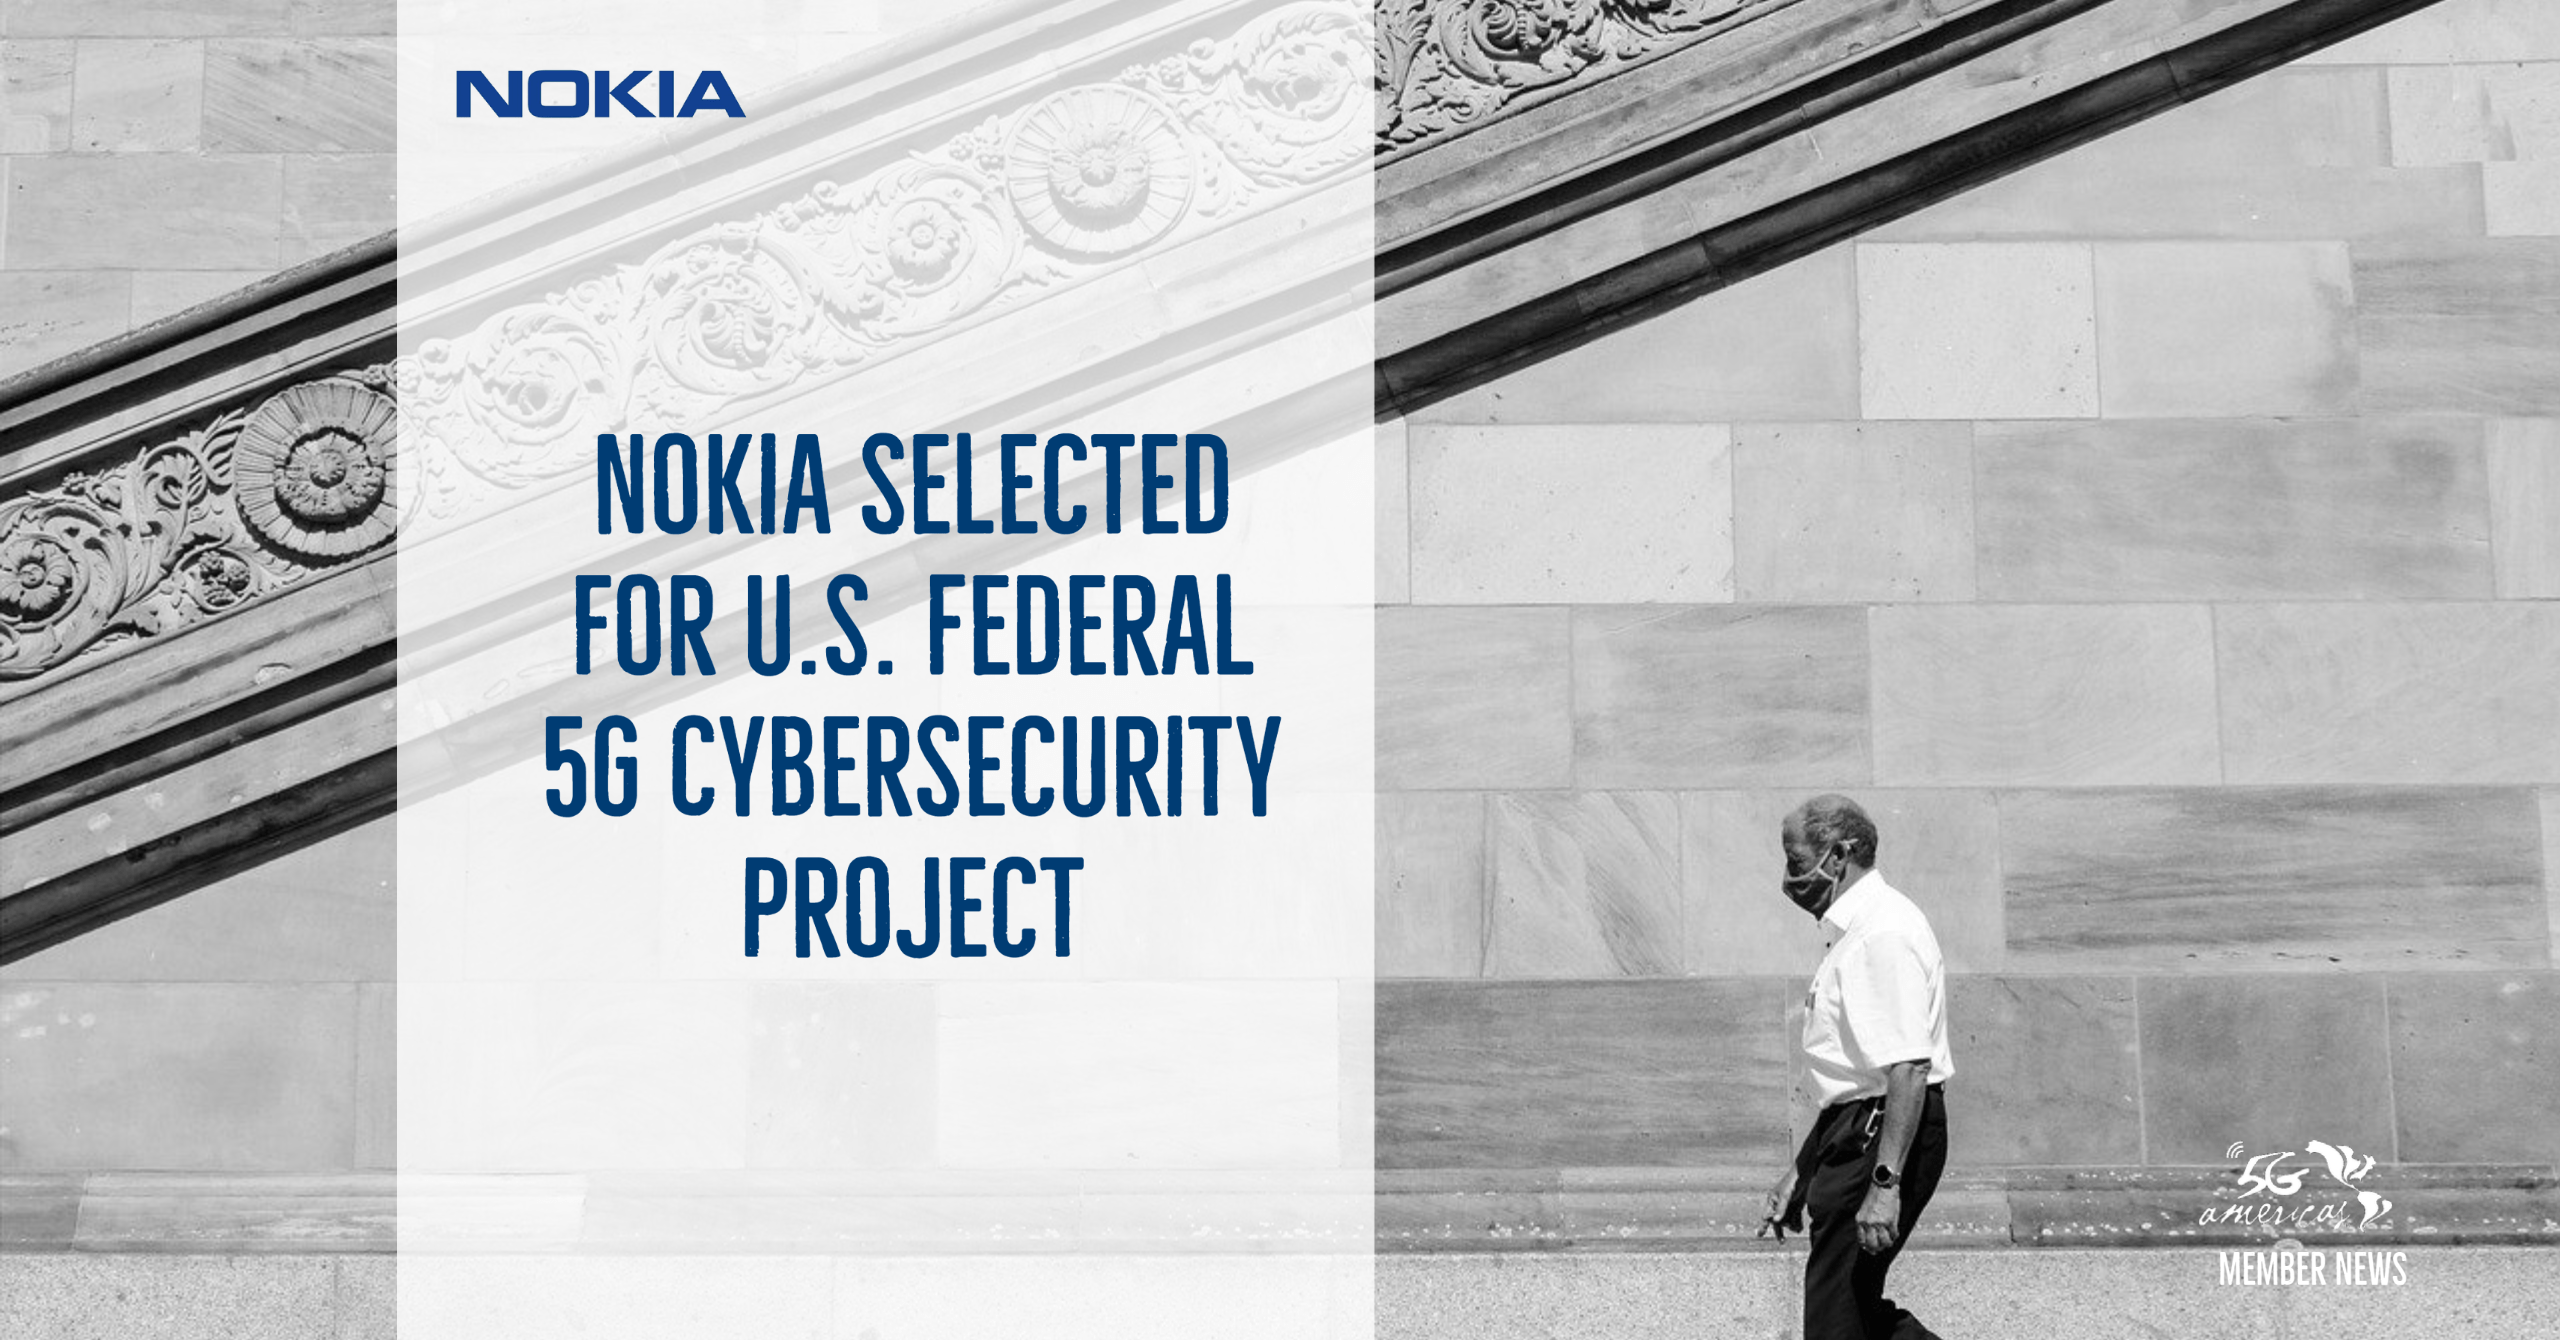 Nokia selected for U.S. Federal 5G Cybersecurity Project 7